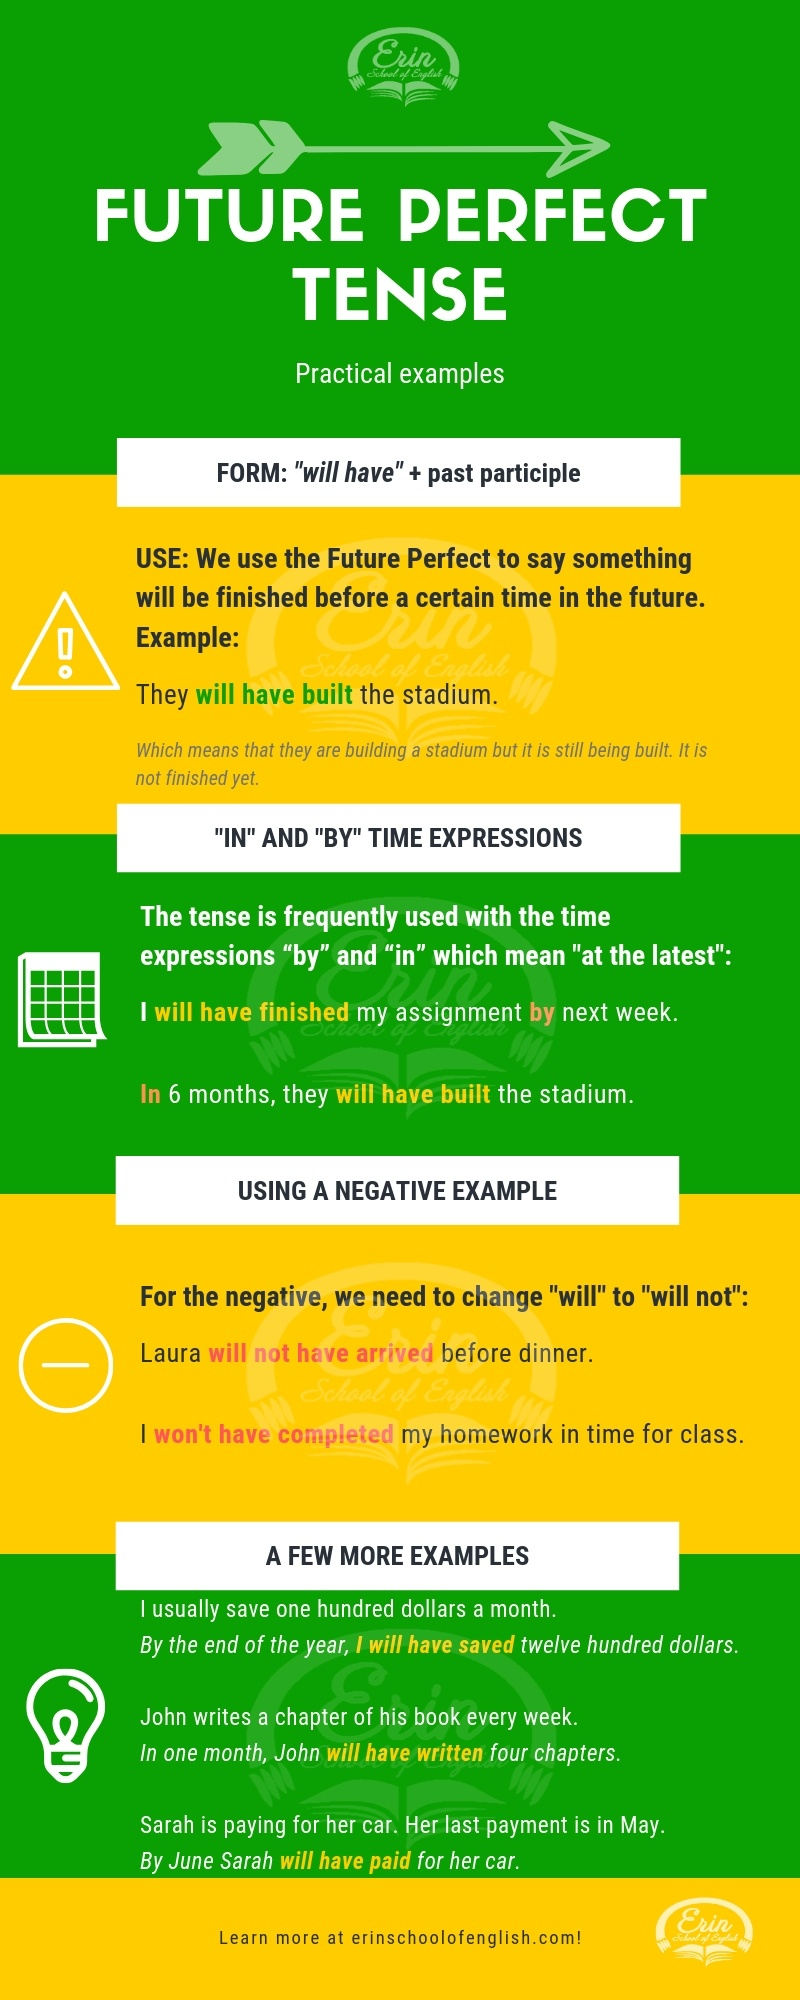 Future Perfect Tense Infographic with examples.